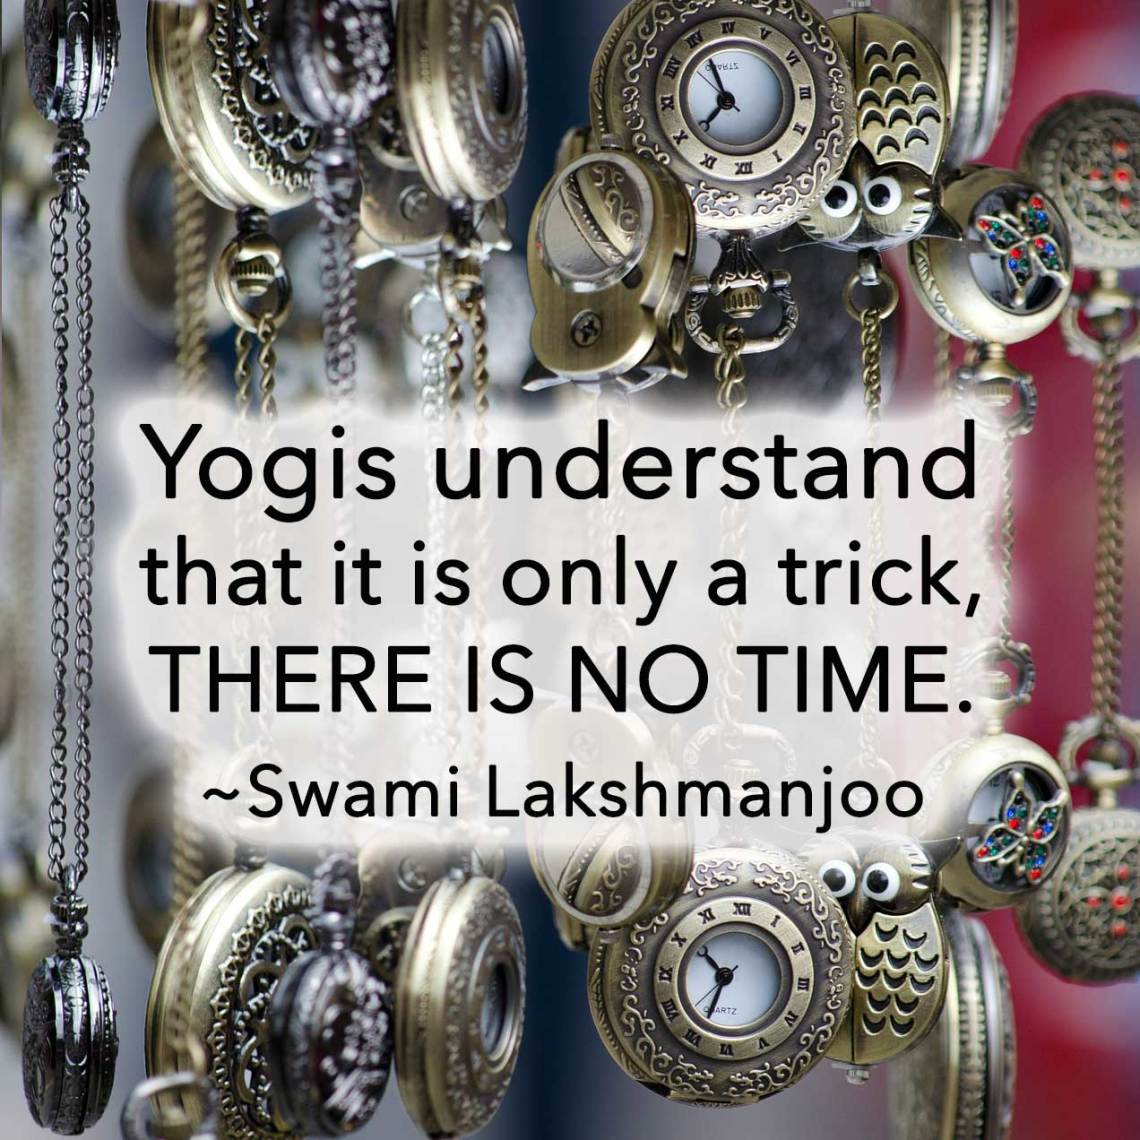 Yogis understand that it is only a trick, there is no time. ~Swami Lakshmanjoo